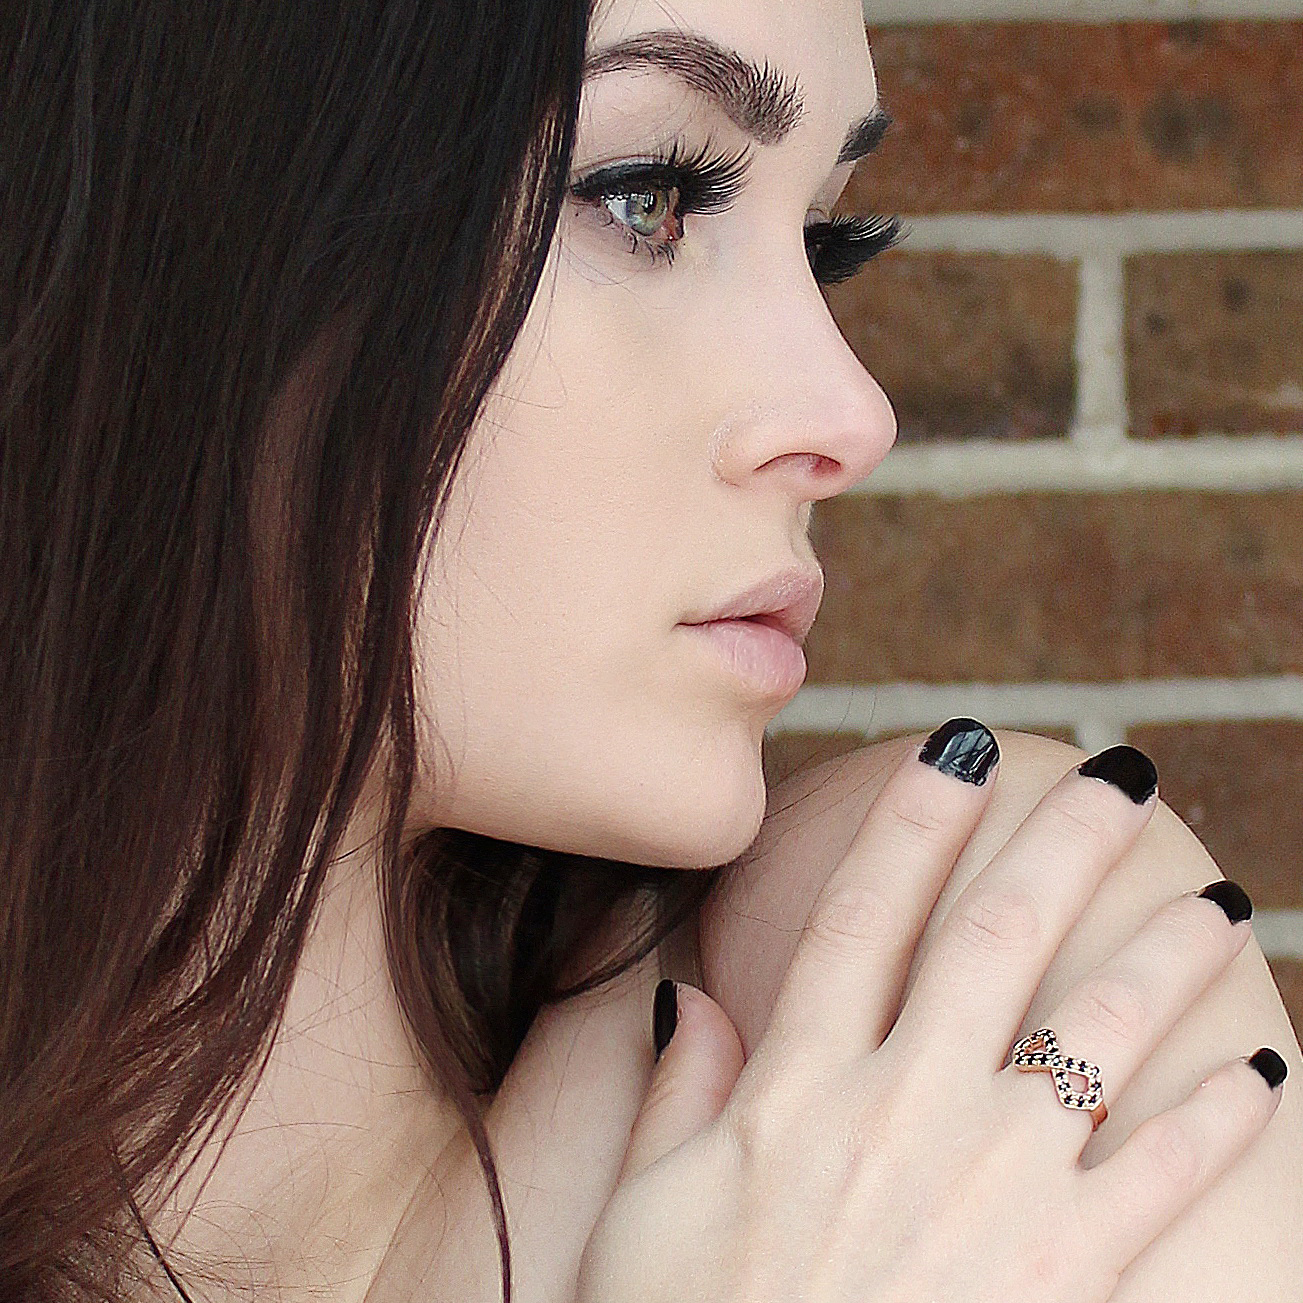 Niece Waidhofer (@niecewaidhofer) with Elite & Luck Rings